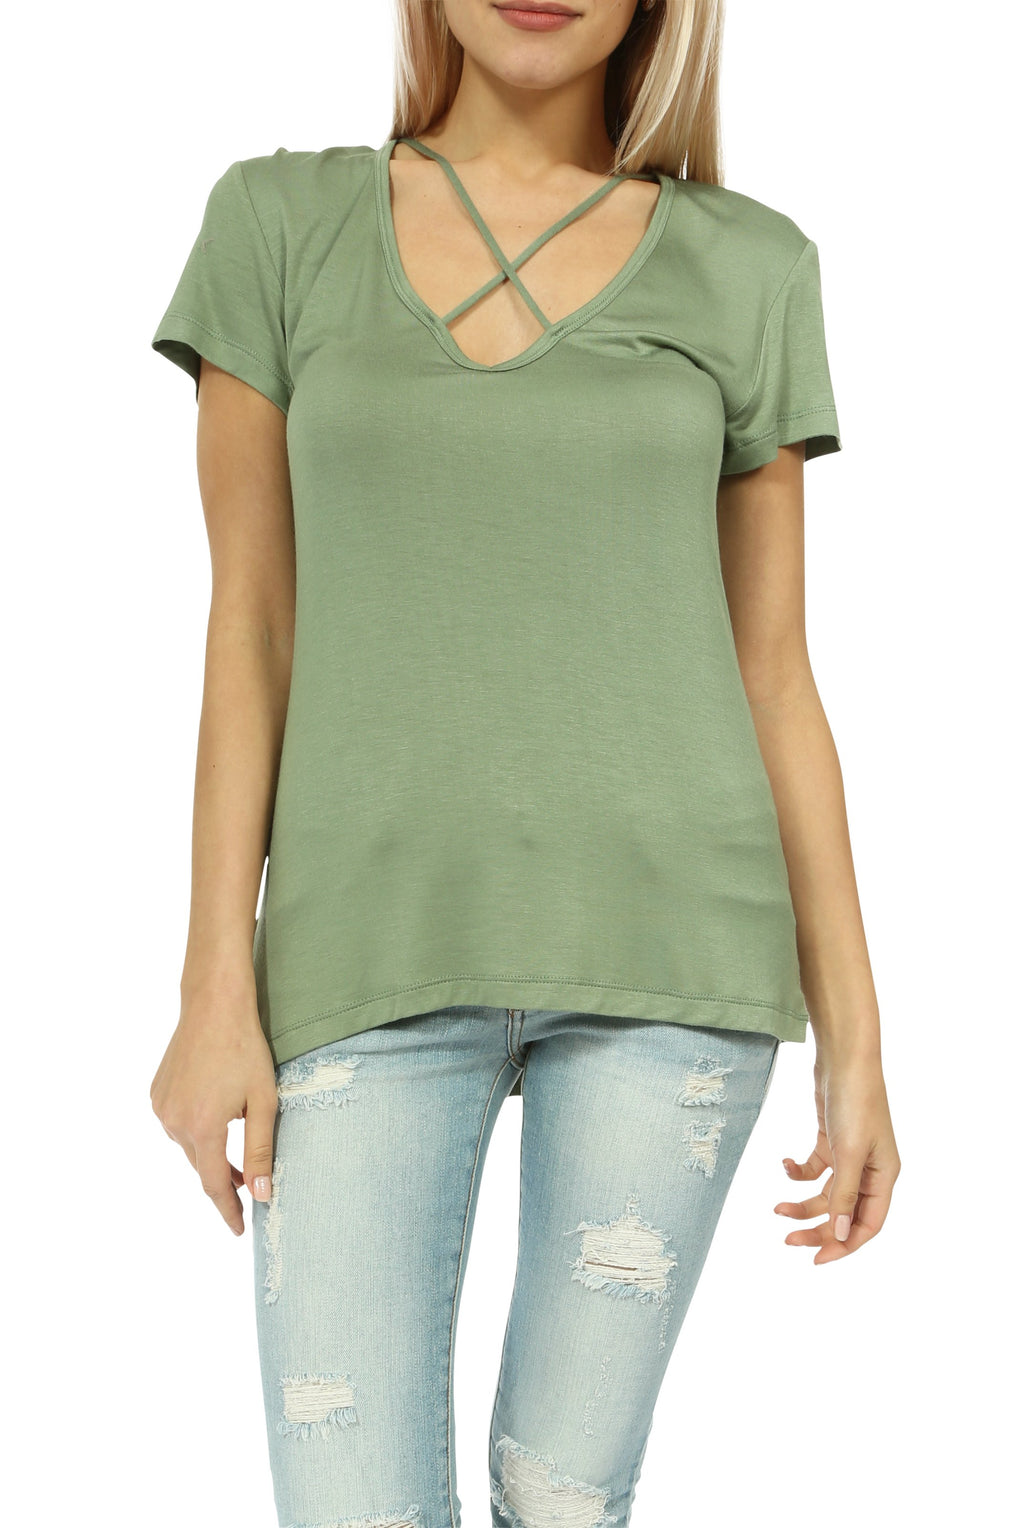 Teeze Me | Short Sleeve V Neck Cross Front Casual Top  | Olive - Teeze Me